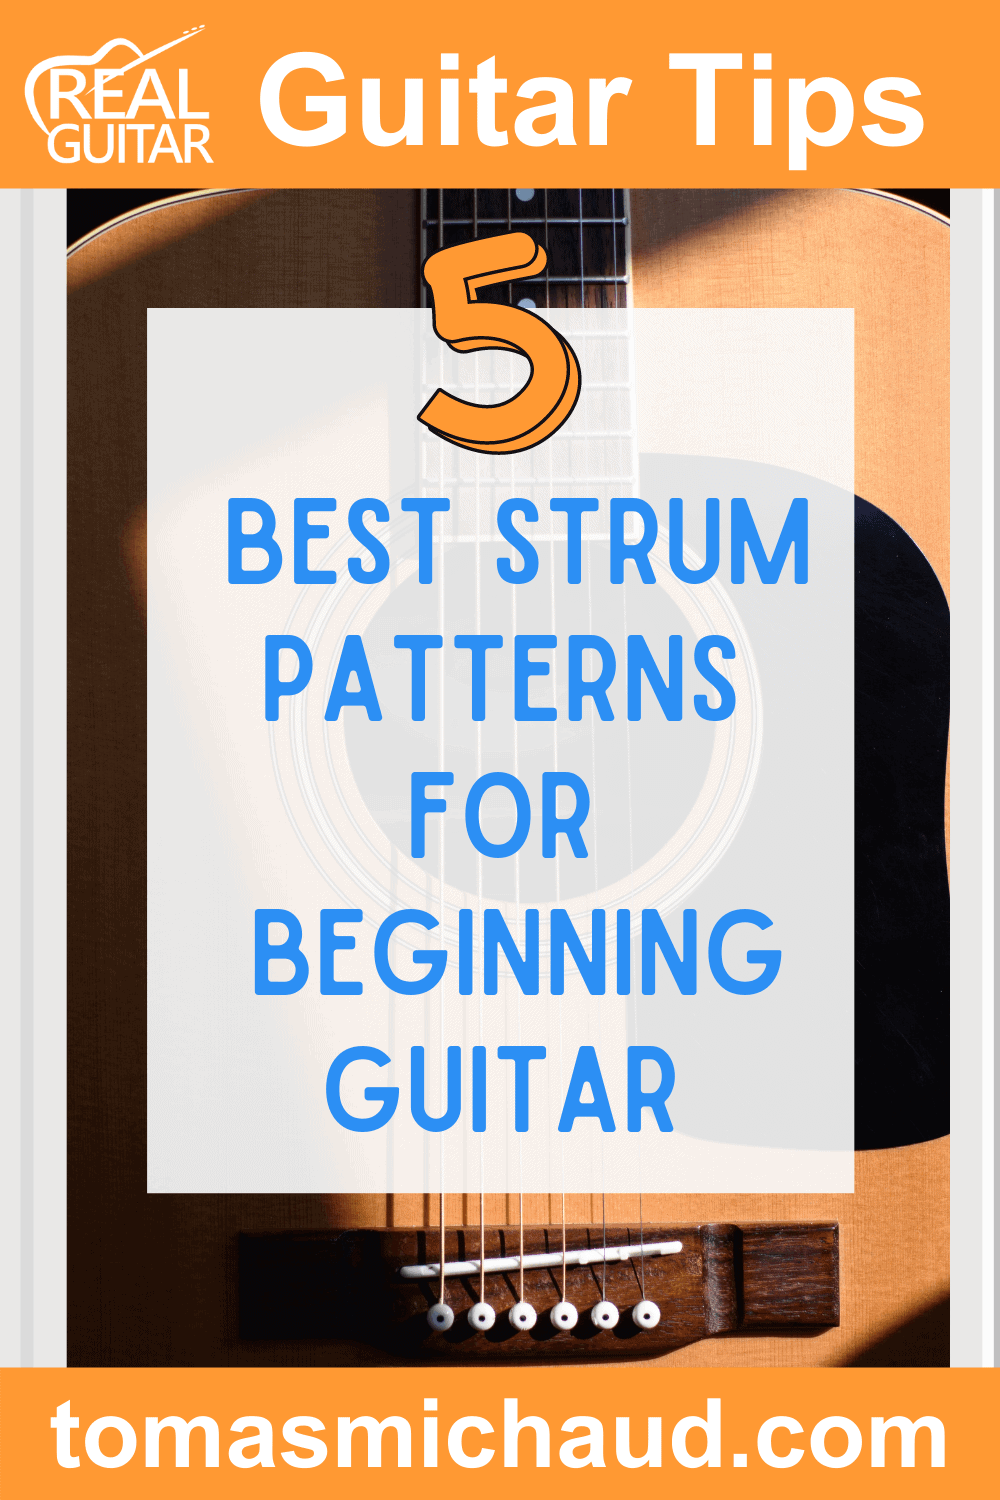 Best 5 Strum Patters for Beginning Guitar